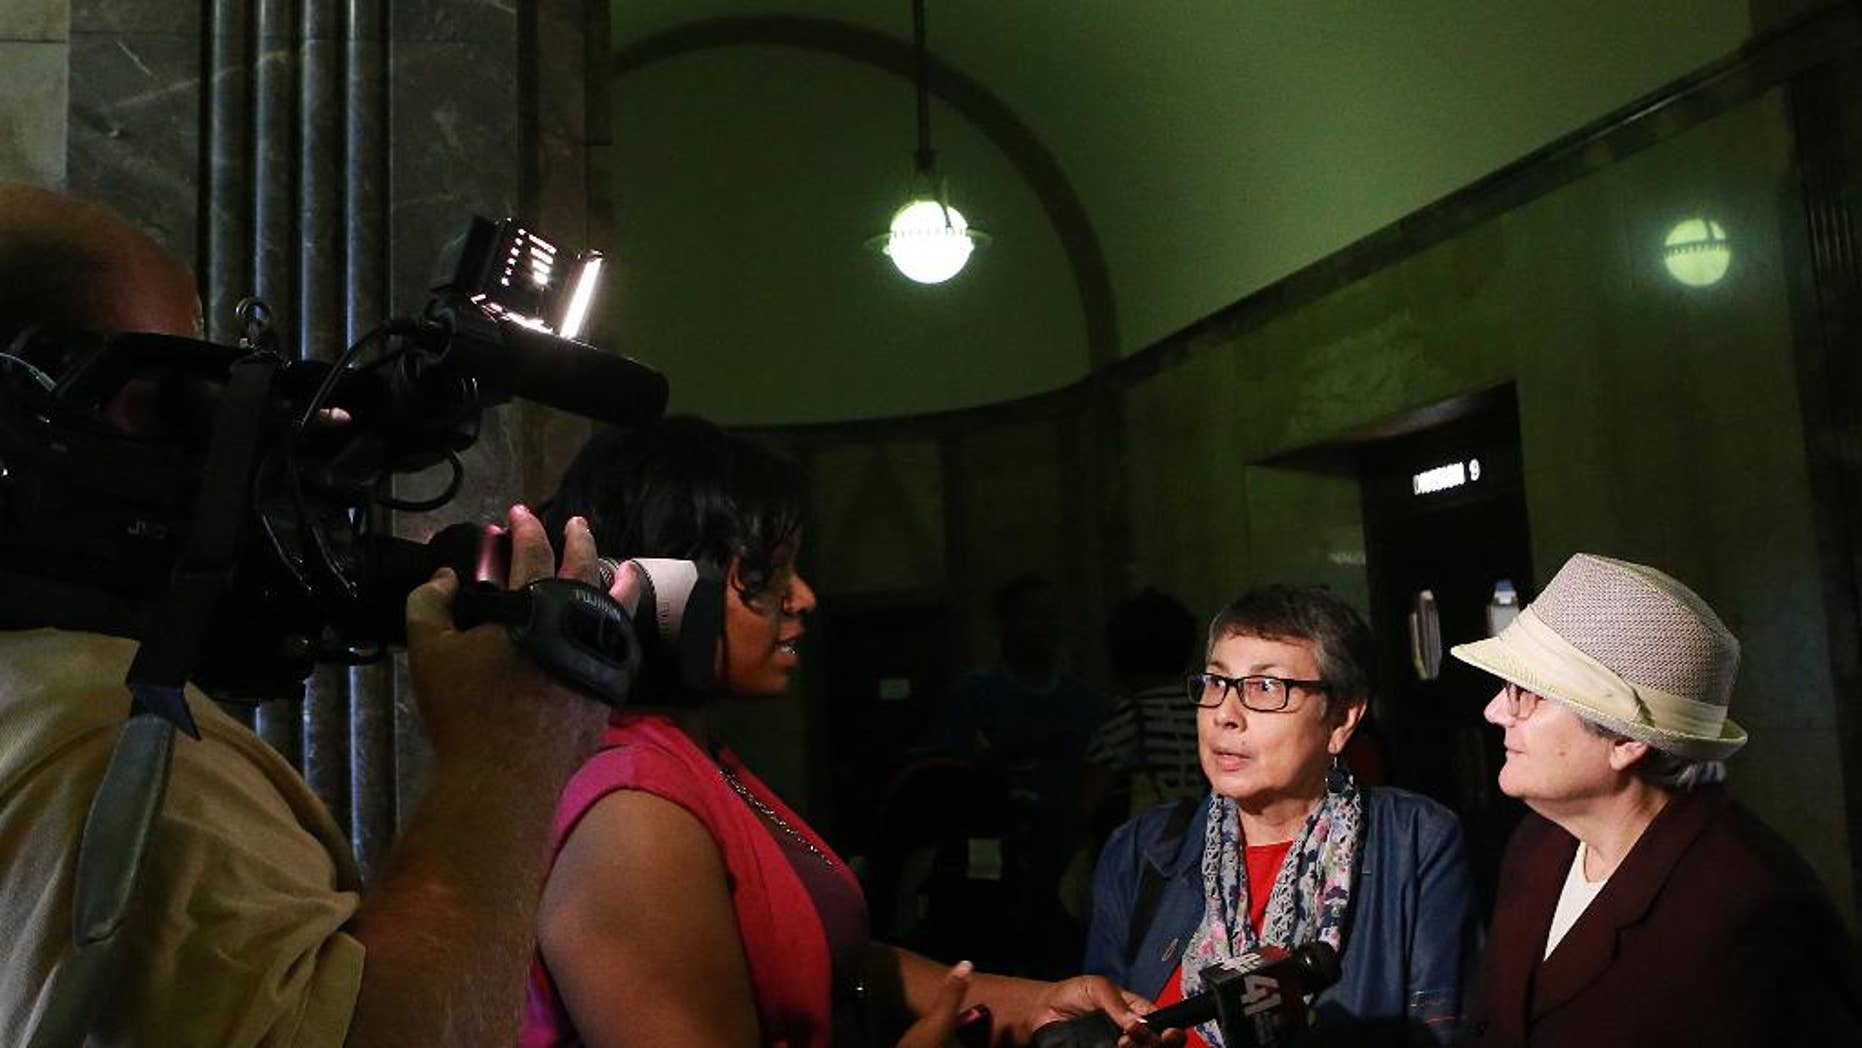 """FILE - In this Thursday, Sept. 25, 2014, file photo, same-sex couple Zuleyma Tang-Martinez, second from right, and Arlene Zarembka, right, of St. Louis, talk to news media in the Jackson County Courthouse in Kansas City, Mo. A judge struck down part of Missouri's gay marriage ban for the first time on Friday, Oct. 3, 2014, by ordering the state to recognize same-sex marriages legally performed in other states, saying state laws banning the unions single out gay couples """"for no logical reason."""" The ruling was made in a lawsuit filed by 10 same-sex couples who legally married outside the state, including Zarembka and Tang-Martinez. (AP Photo/St. Louis Post-Dispatch, Christian Gooden, Pool, File)"""